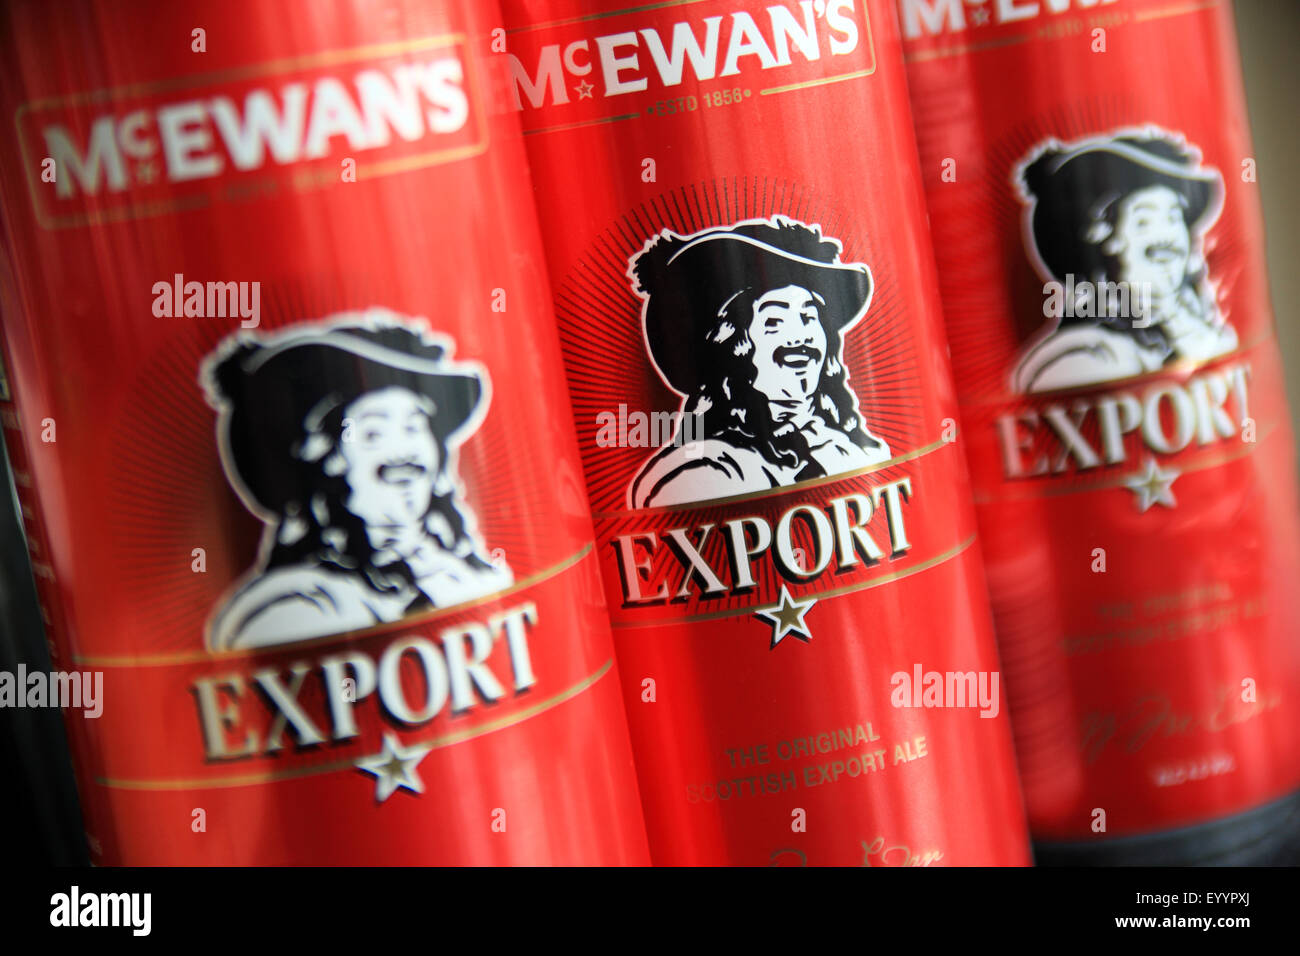 Cans of McEwans Export beer made in Edinburgh Scotland - Stock Image